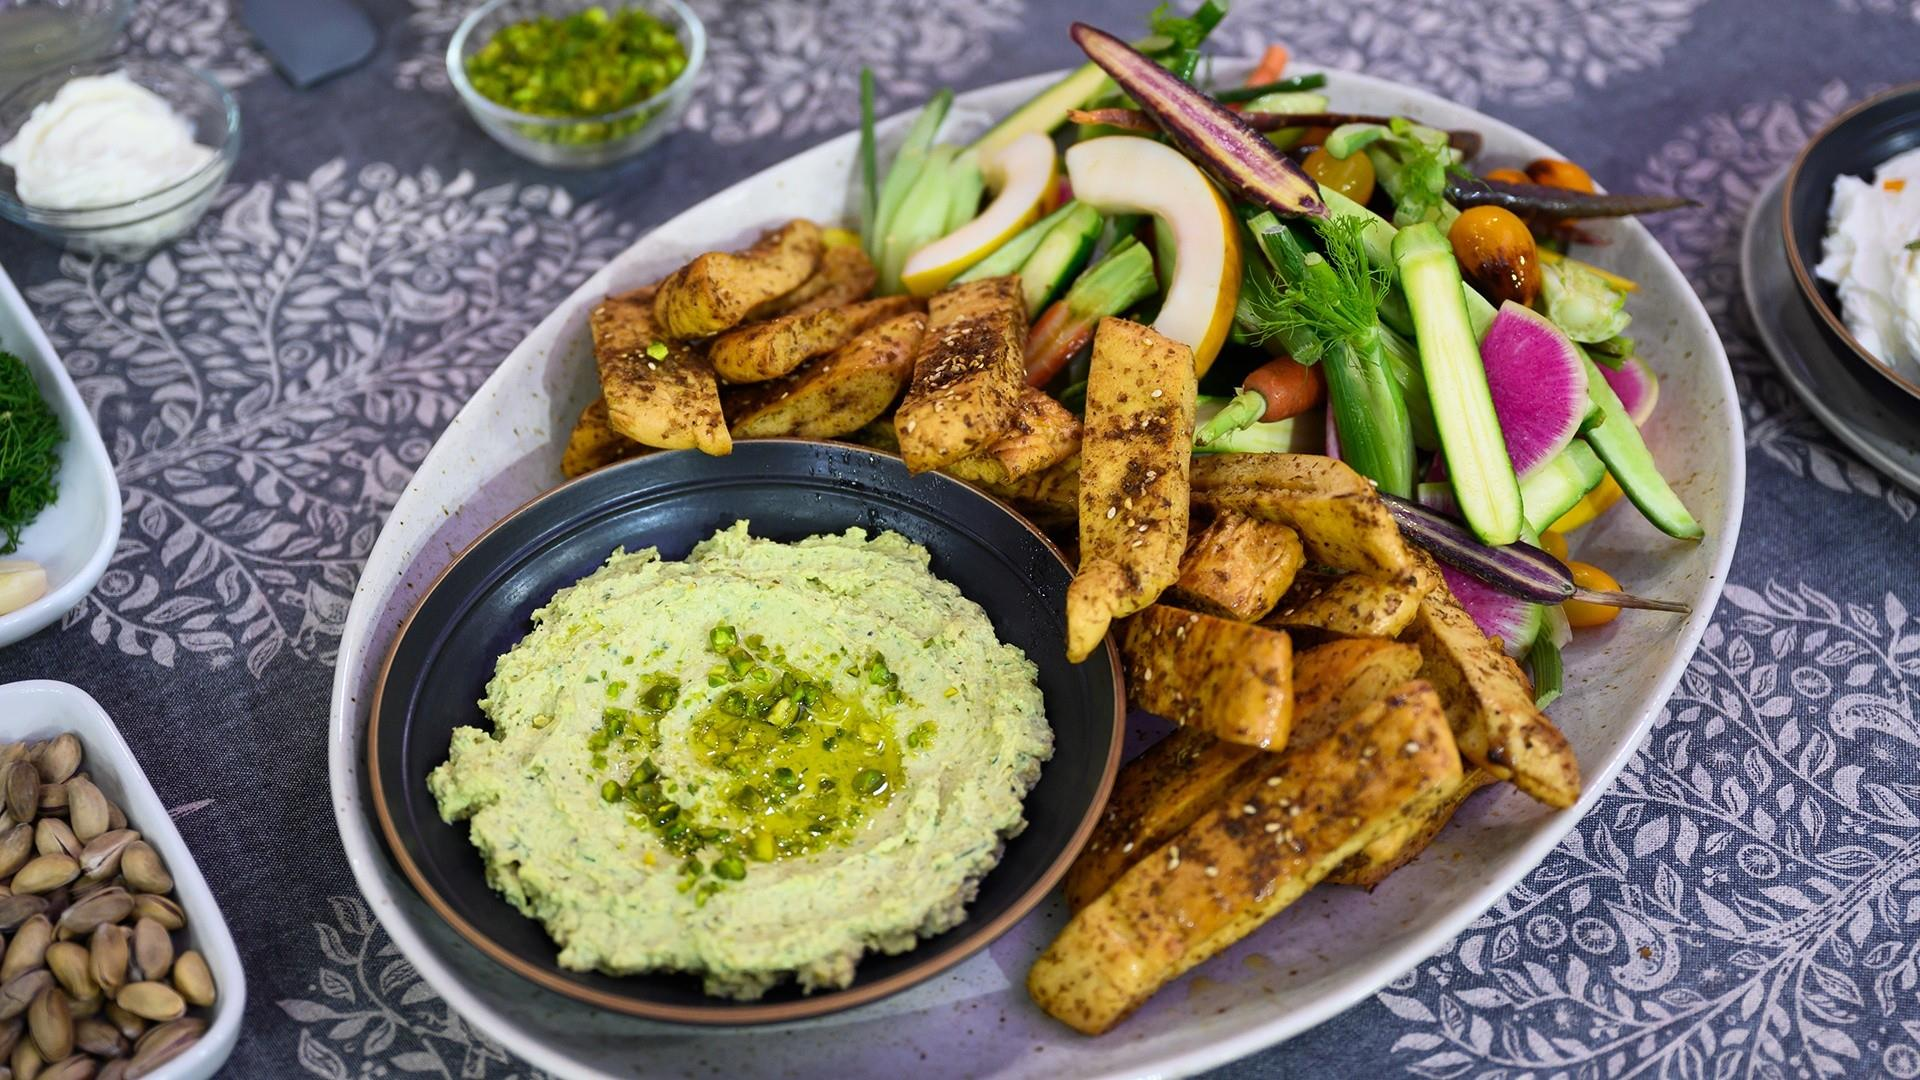 Middle Eastern-inspired recipes: Make chicken shawarma and feta dip